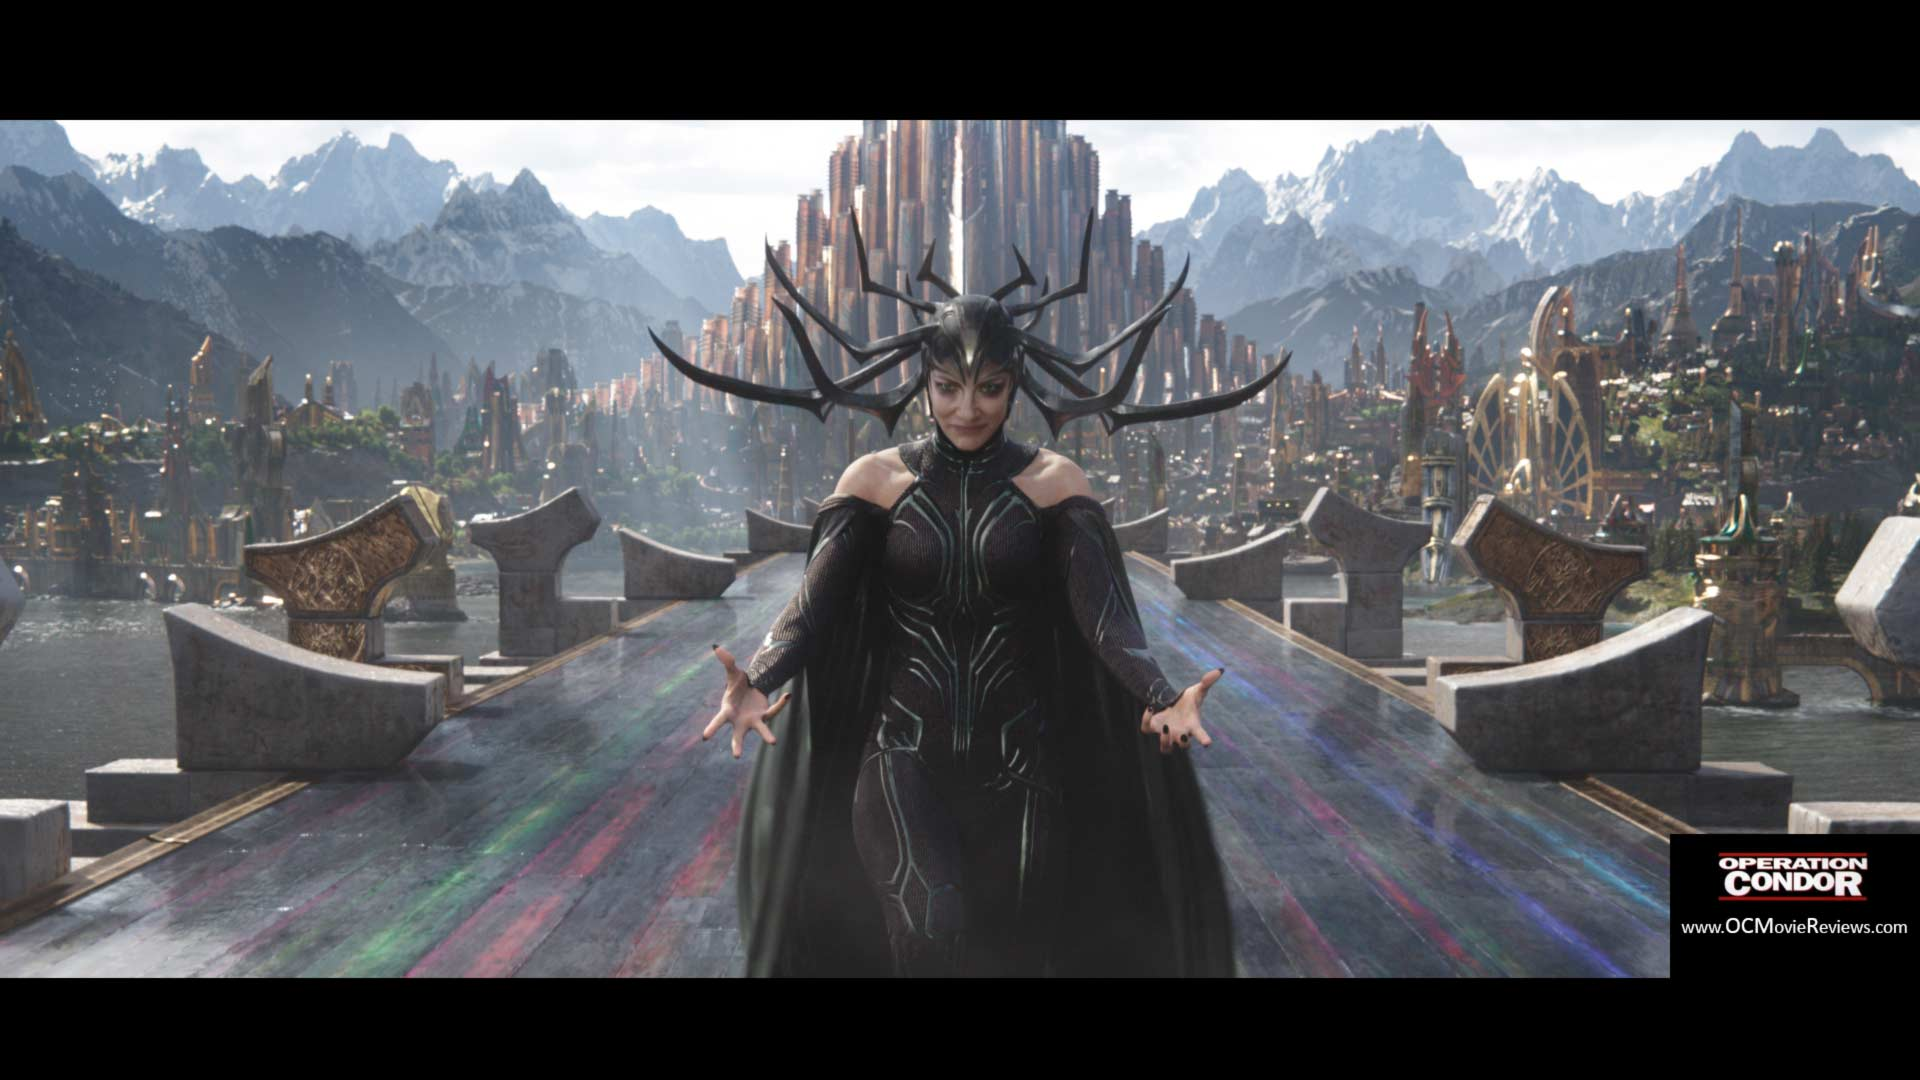 Thor Ragnarok 3D IMAX Review – It's Thor, Like You've Never Seen Him Before - OC Movie Reviews - Movie Reviews, Movie News, Documentary Reviews, Short Films, Short Film Reviews, Trailers, Movie Trailers, Interviews, film reviews, film news, hollywood, indie films, documentaries